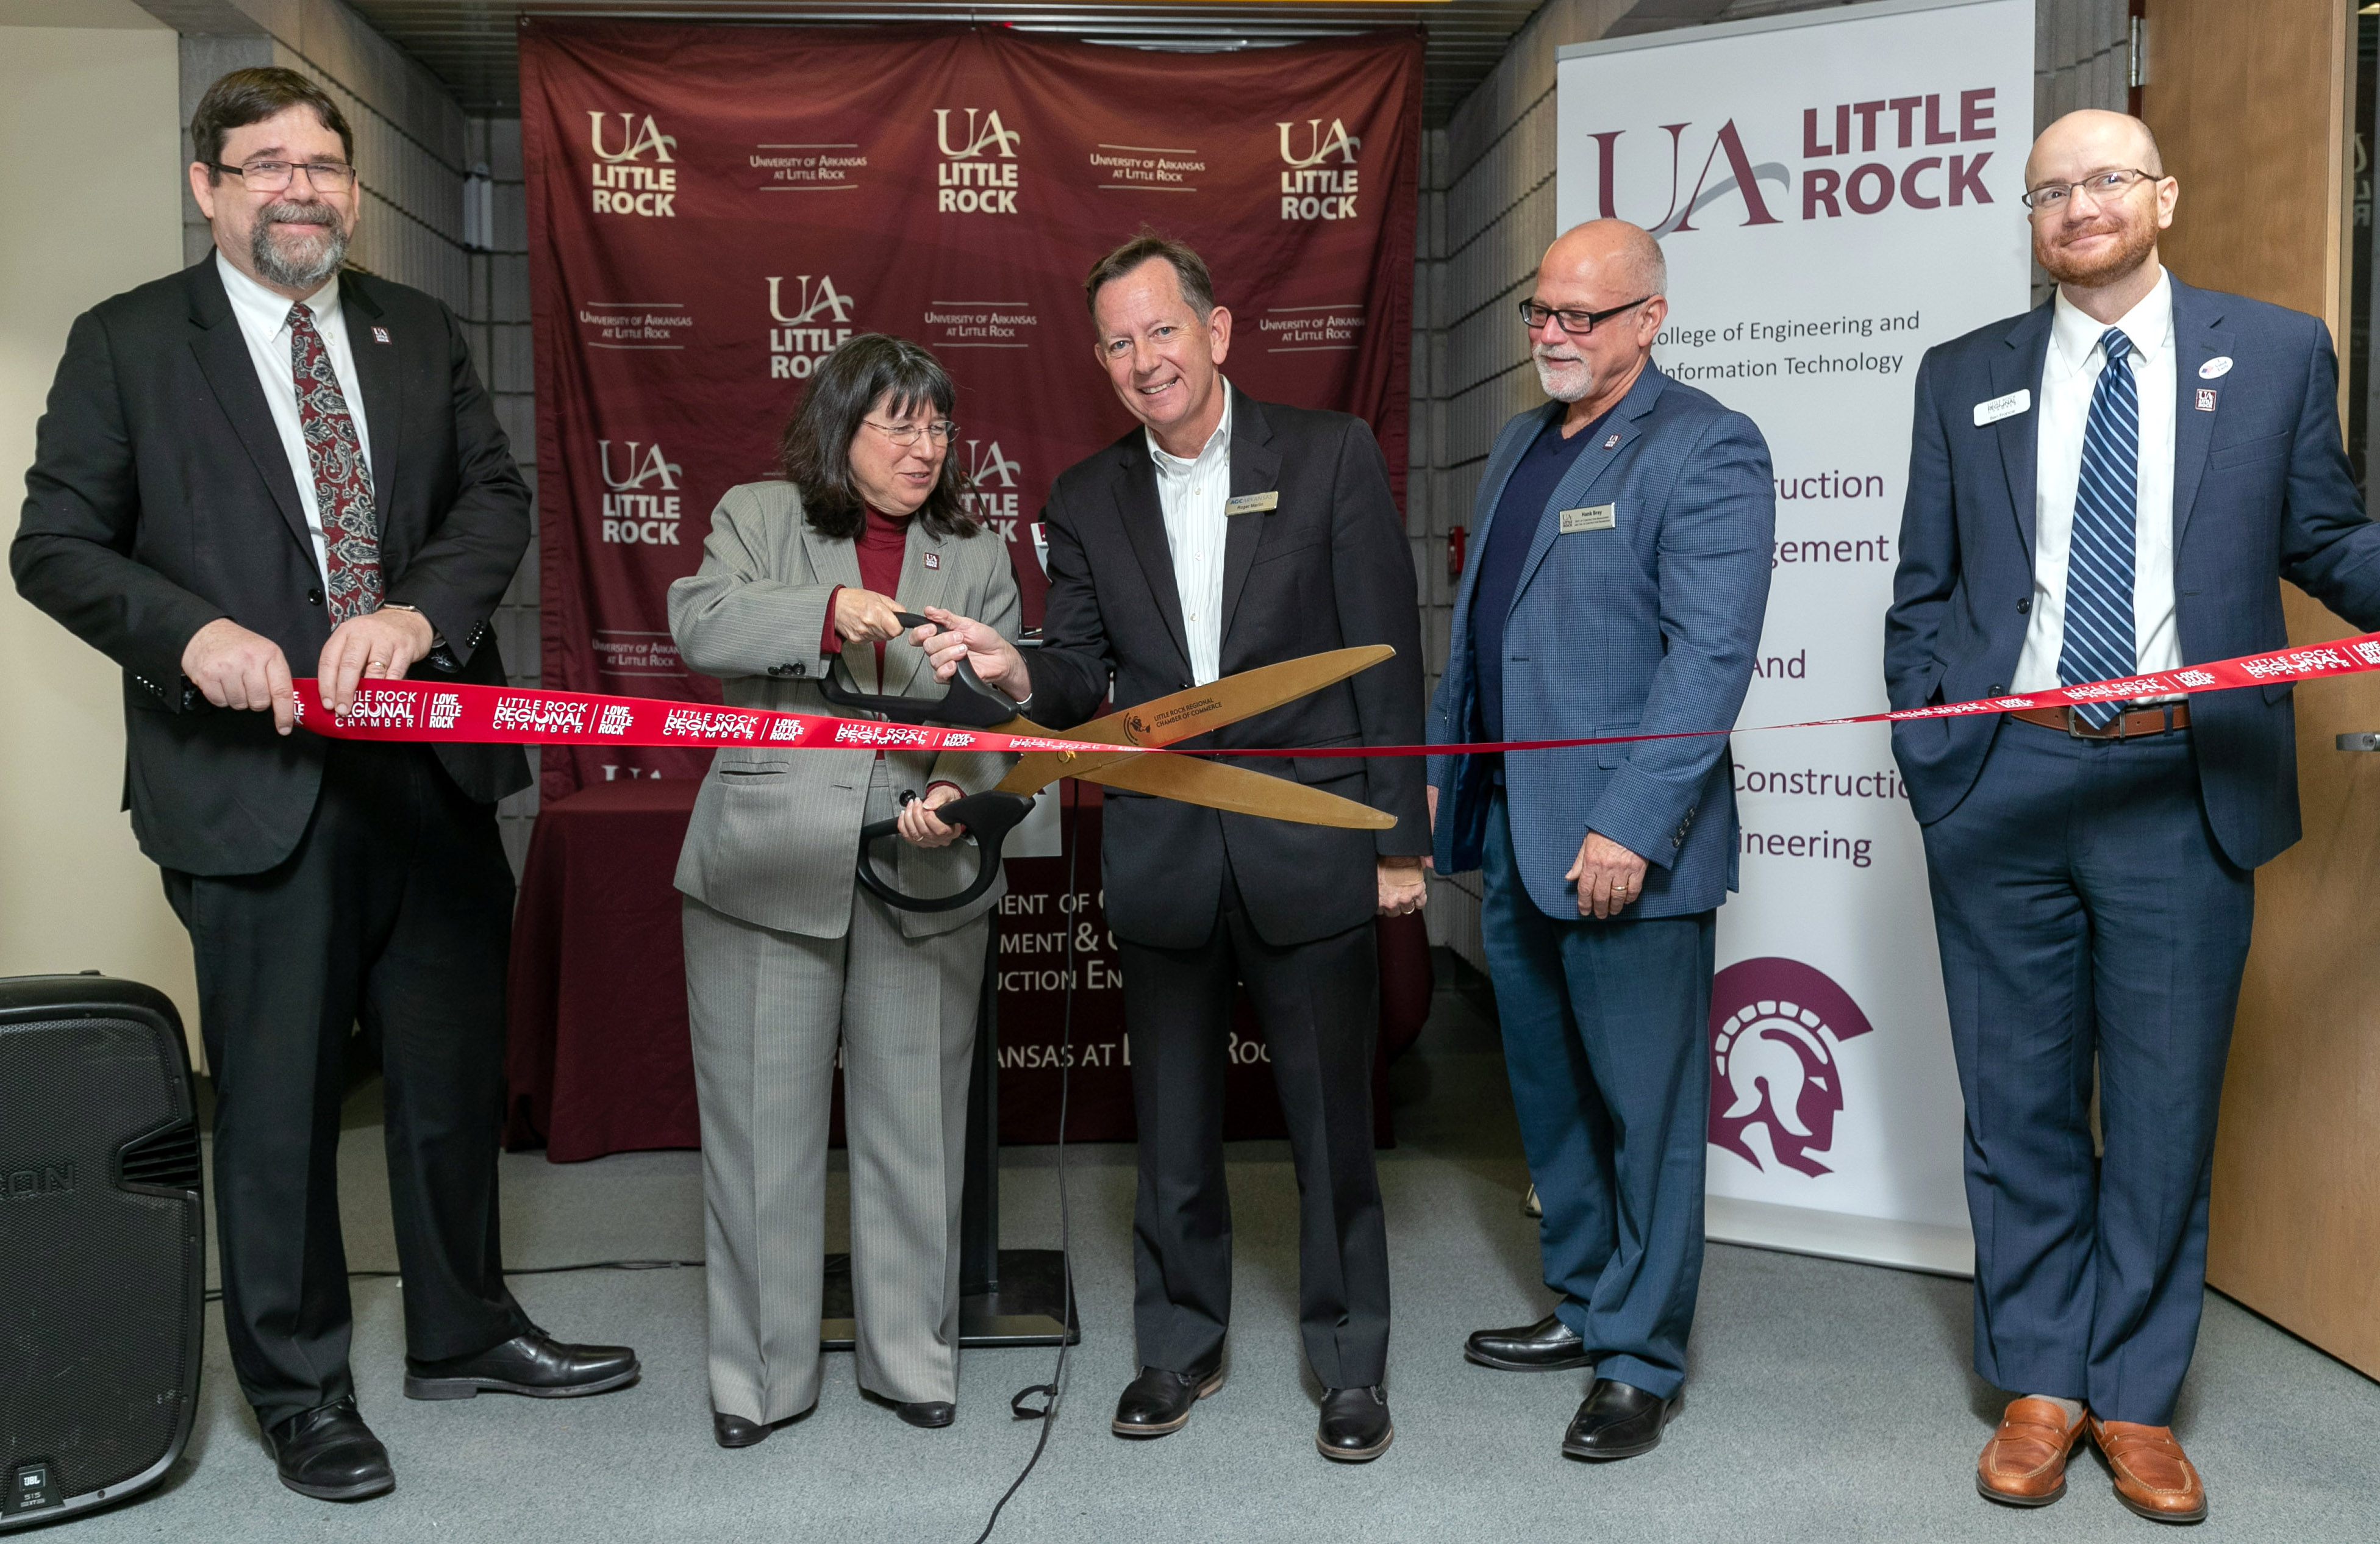 "UA Little Rock staff join donors and community leaders in a dedication ceremony for the university's new AGC of Arkansas Building Information Modeling Lab. Those pictured, L to R, include Dr. Lawrence Whitman, dean of the College of Engineering and Information Technology, Chancellor Christina Drale, Roger Marlin, immediate past president of AGC Arkansas, Dr. Hollis ""Hank"" Bray, chair of the Department of Construction Management and Civil and Construction Engineering, and Ben France, vice president of economic development at Little Rock Regional Chamber of Commerce. Photo by Ben Krain."